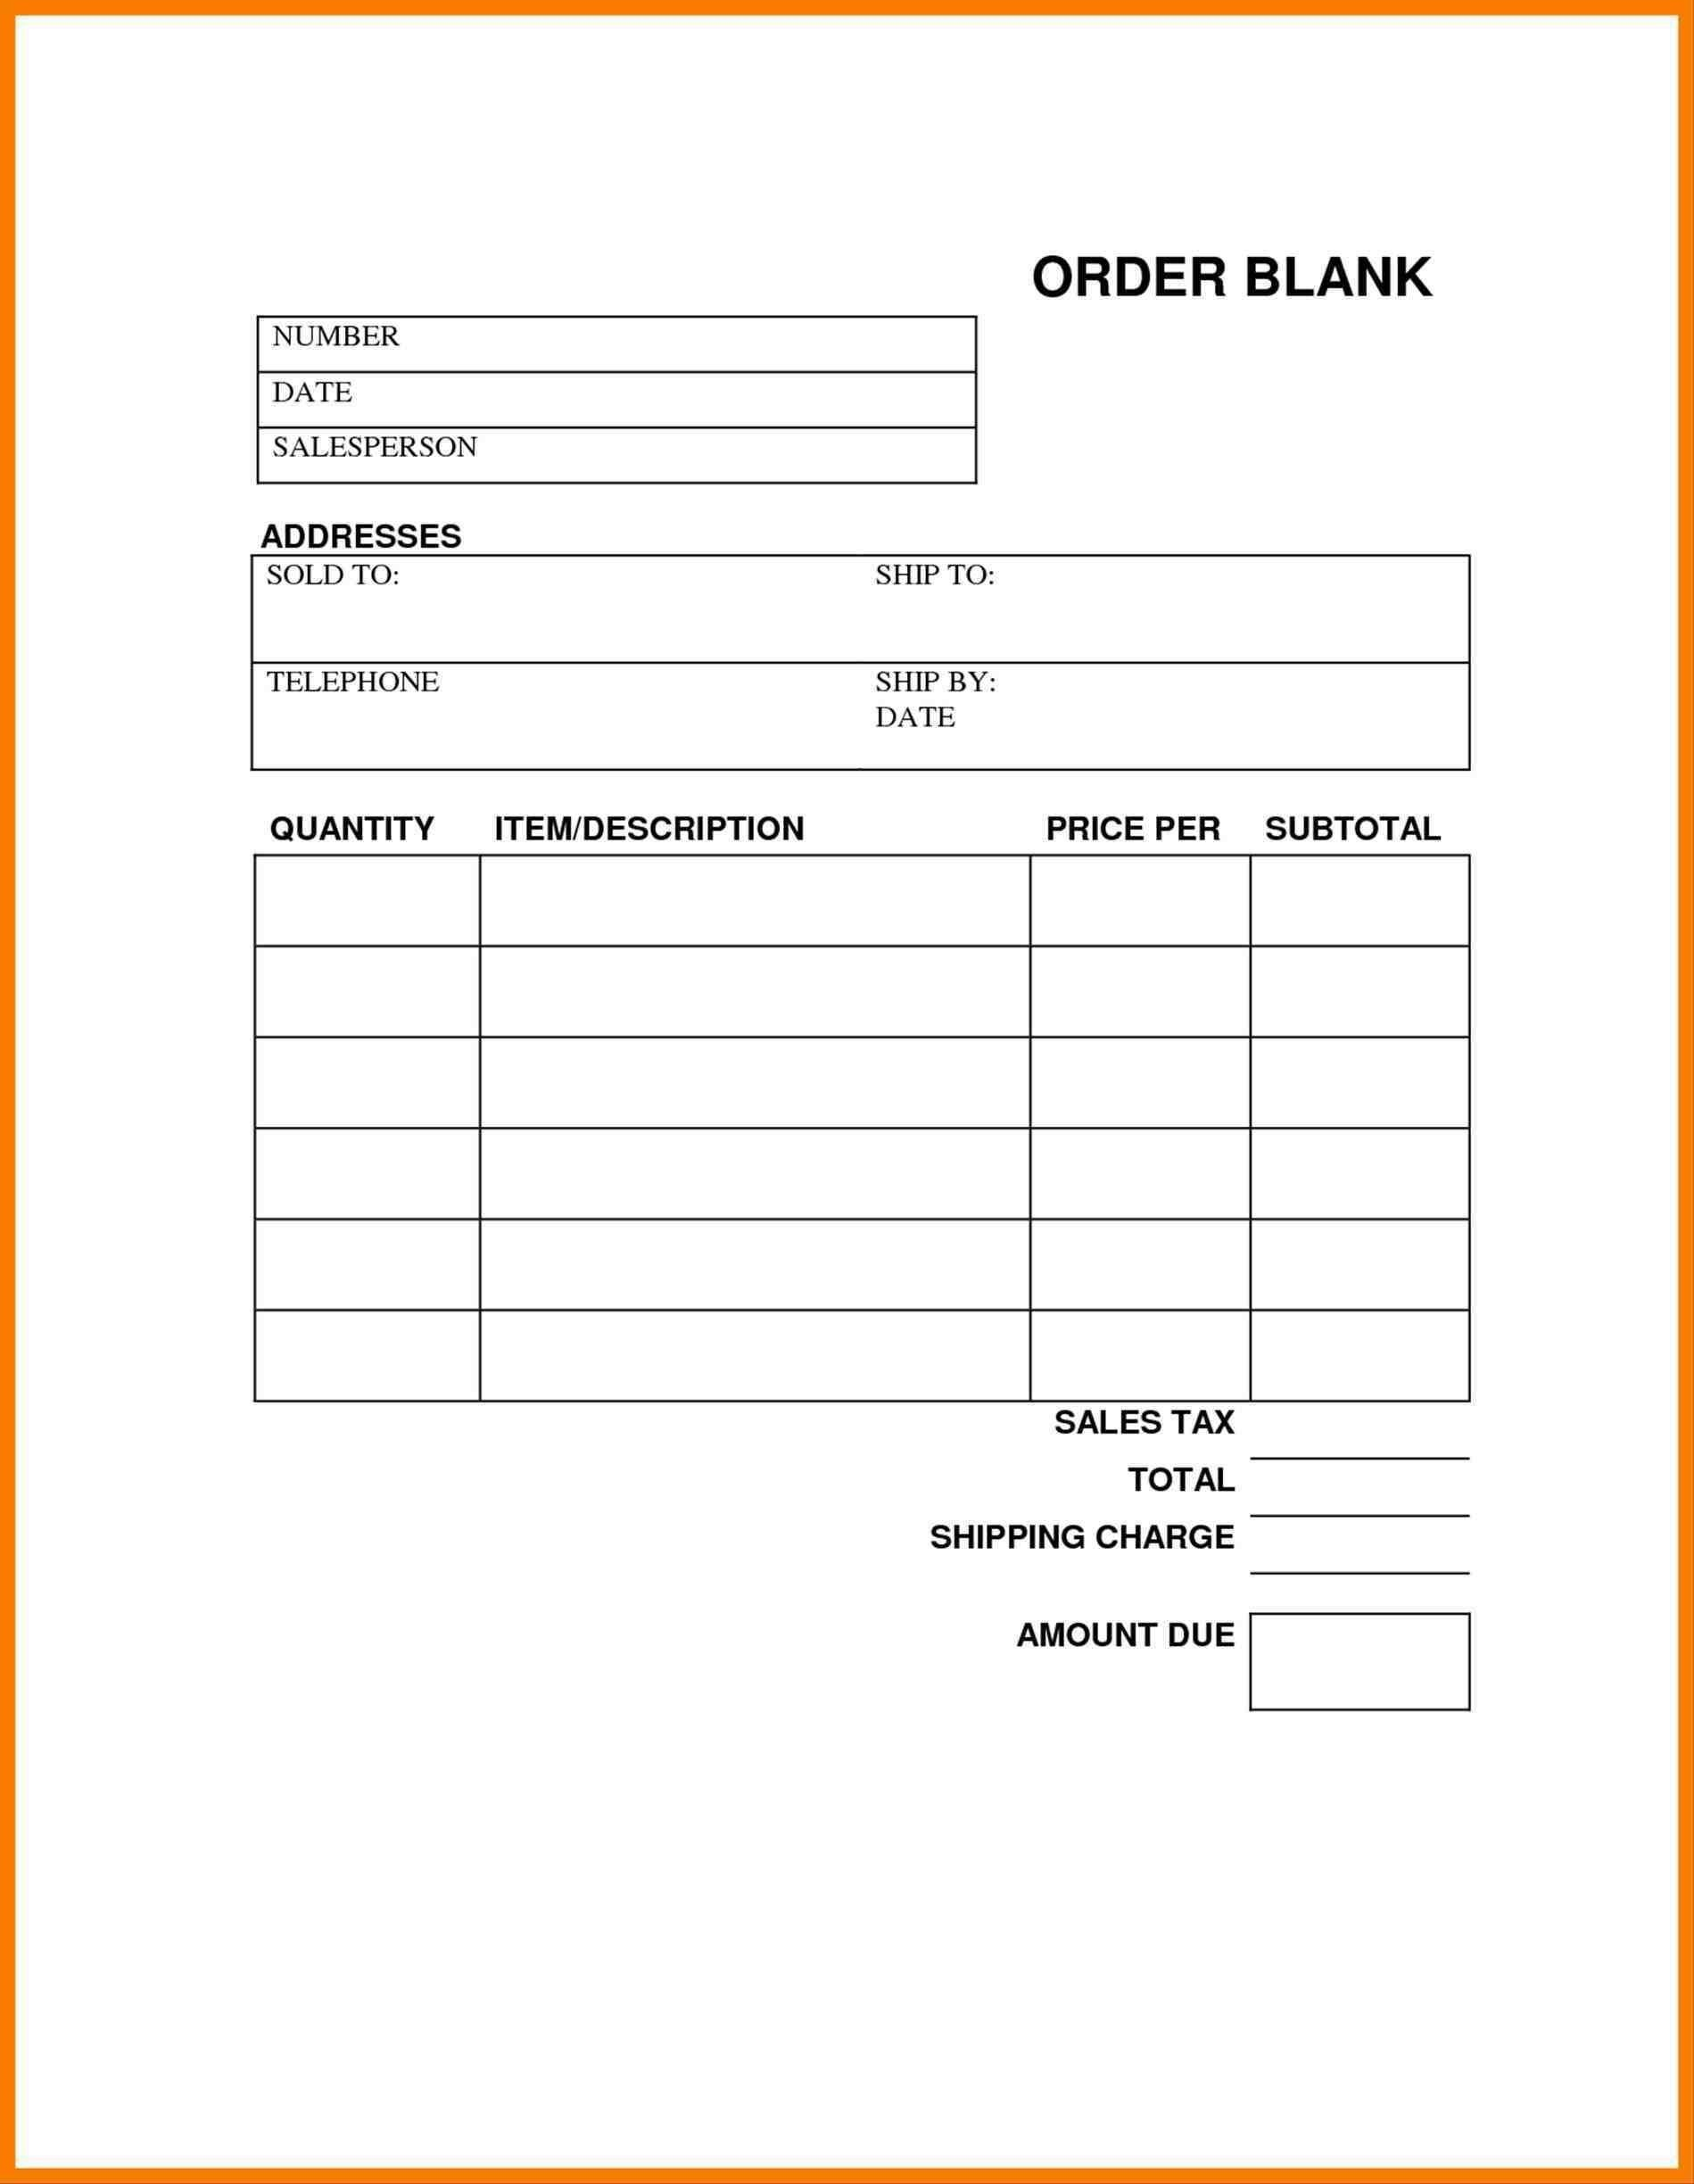 Blank Order Forms Templates Free | Free Tamplate | Order Form - Free Printable Order Forms